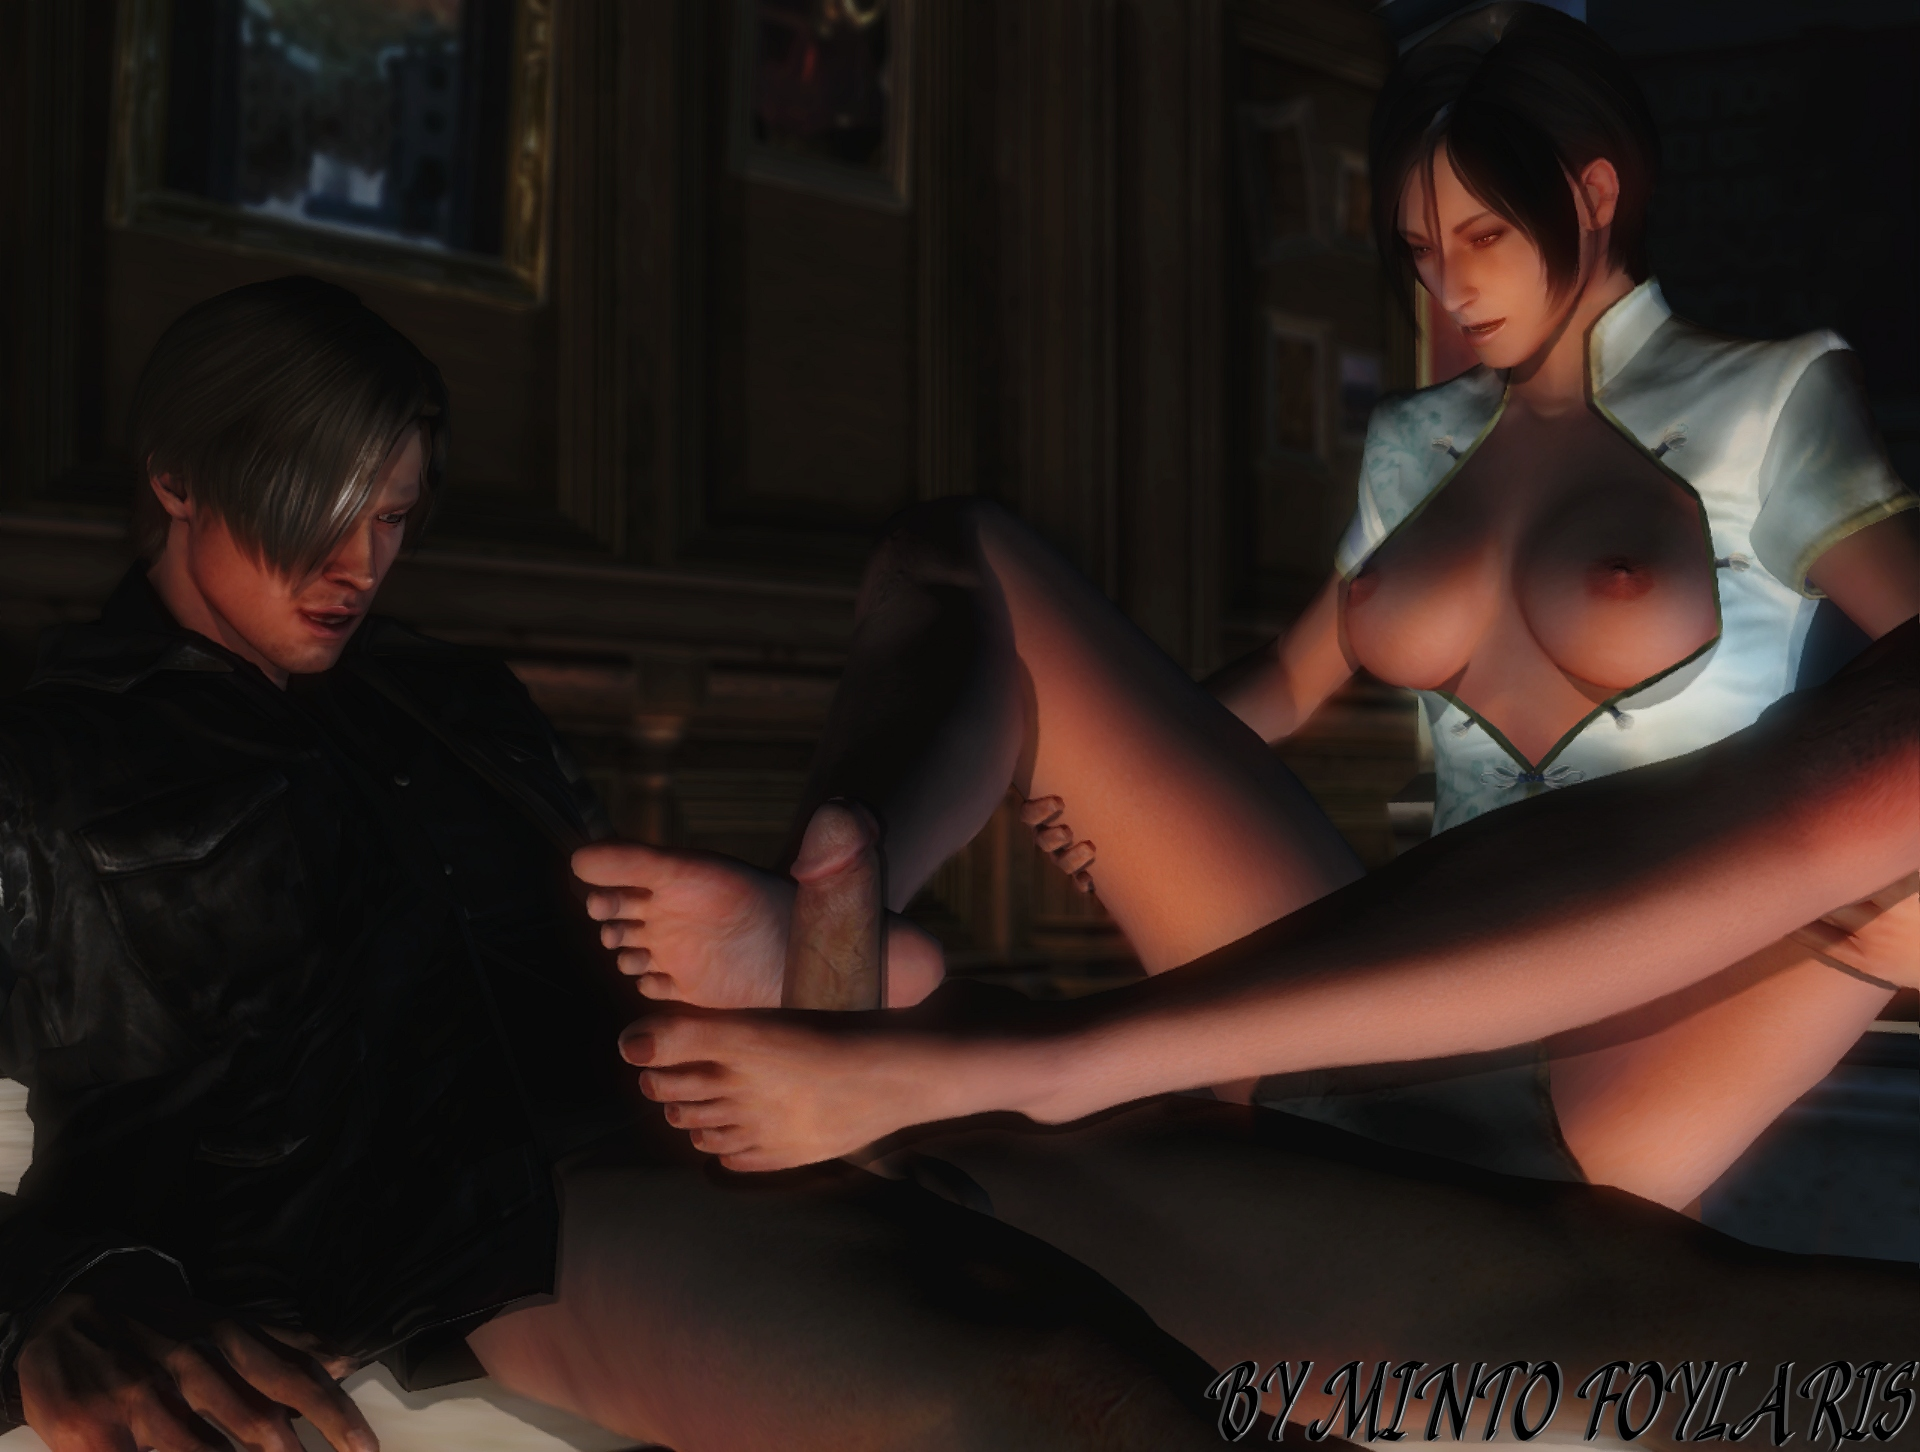 Sex image of ada wong adult photos